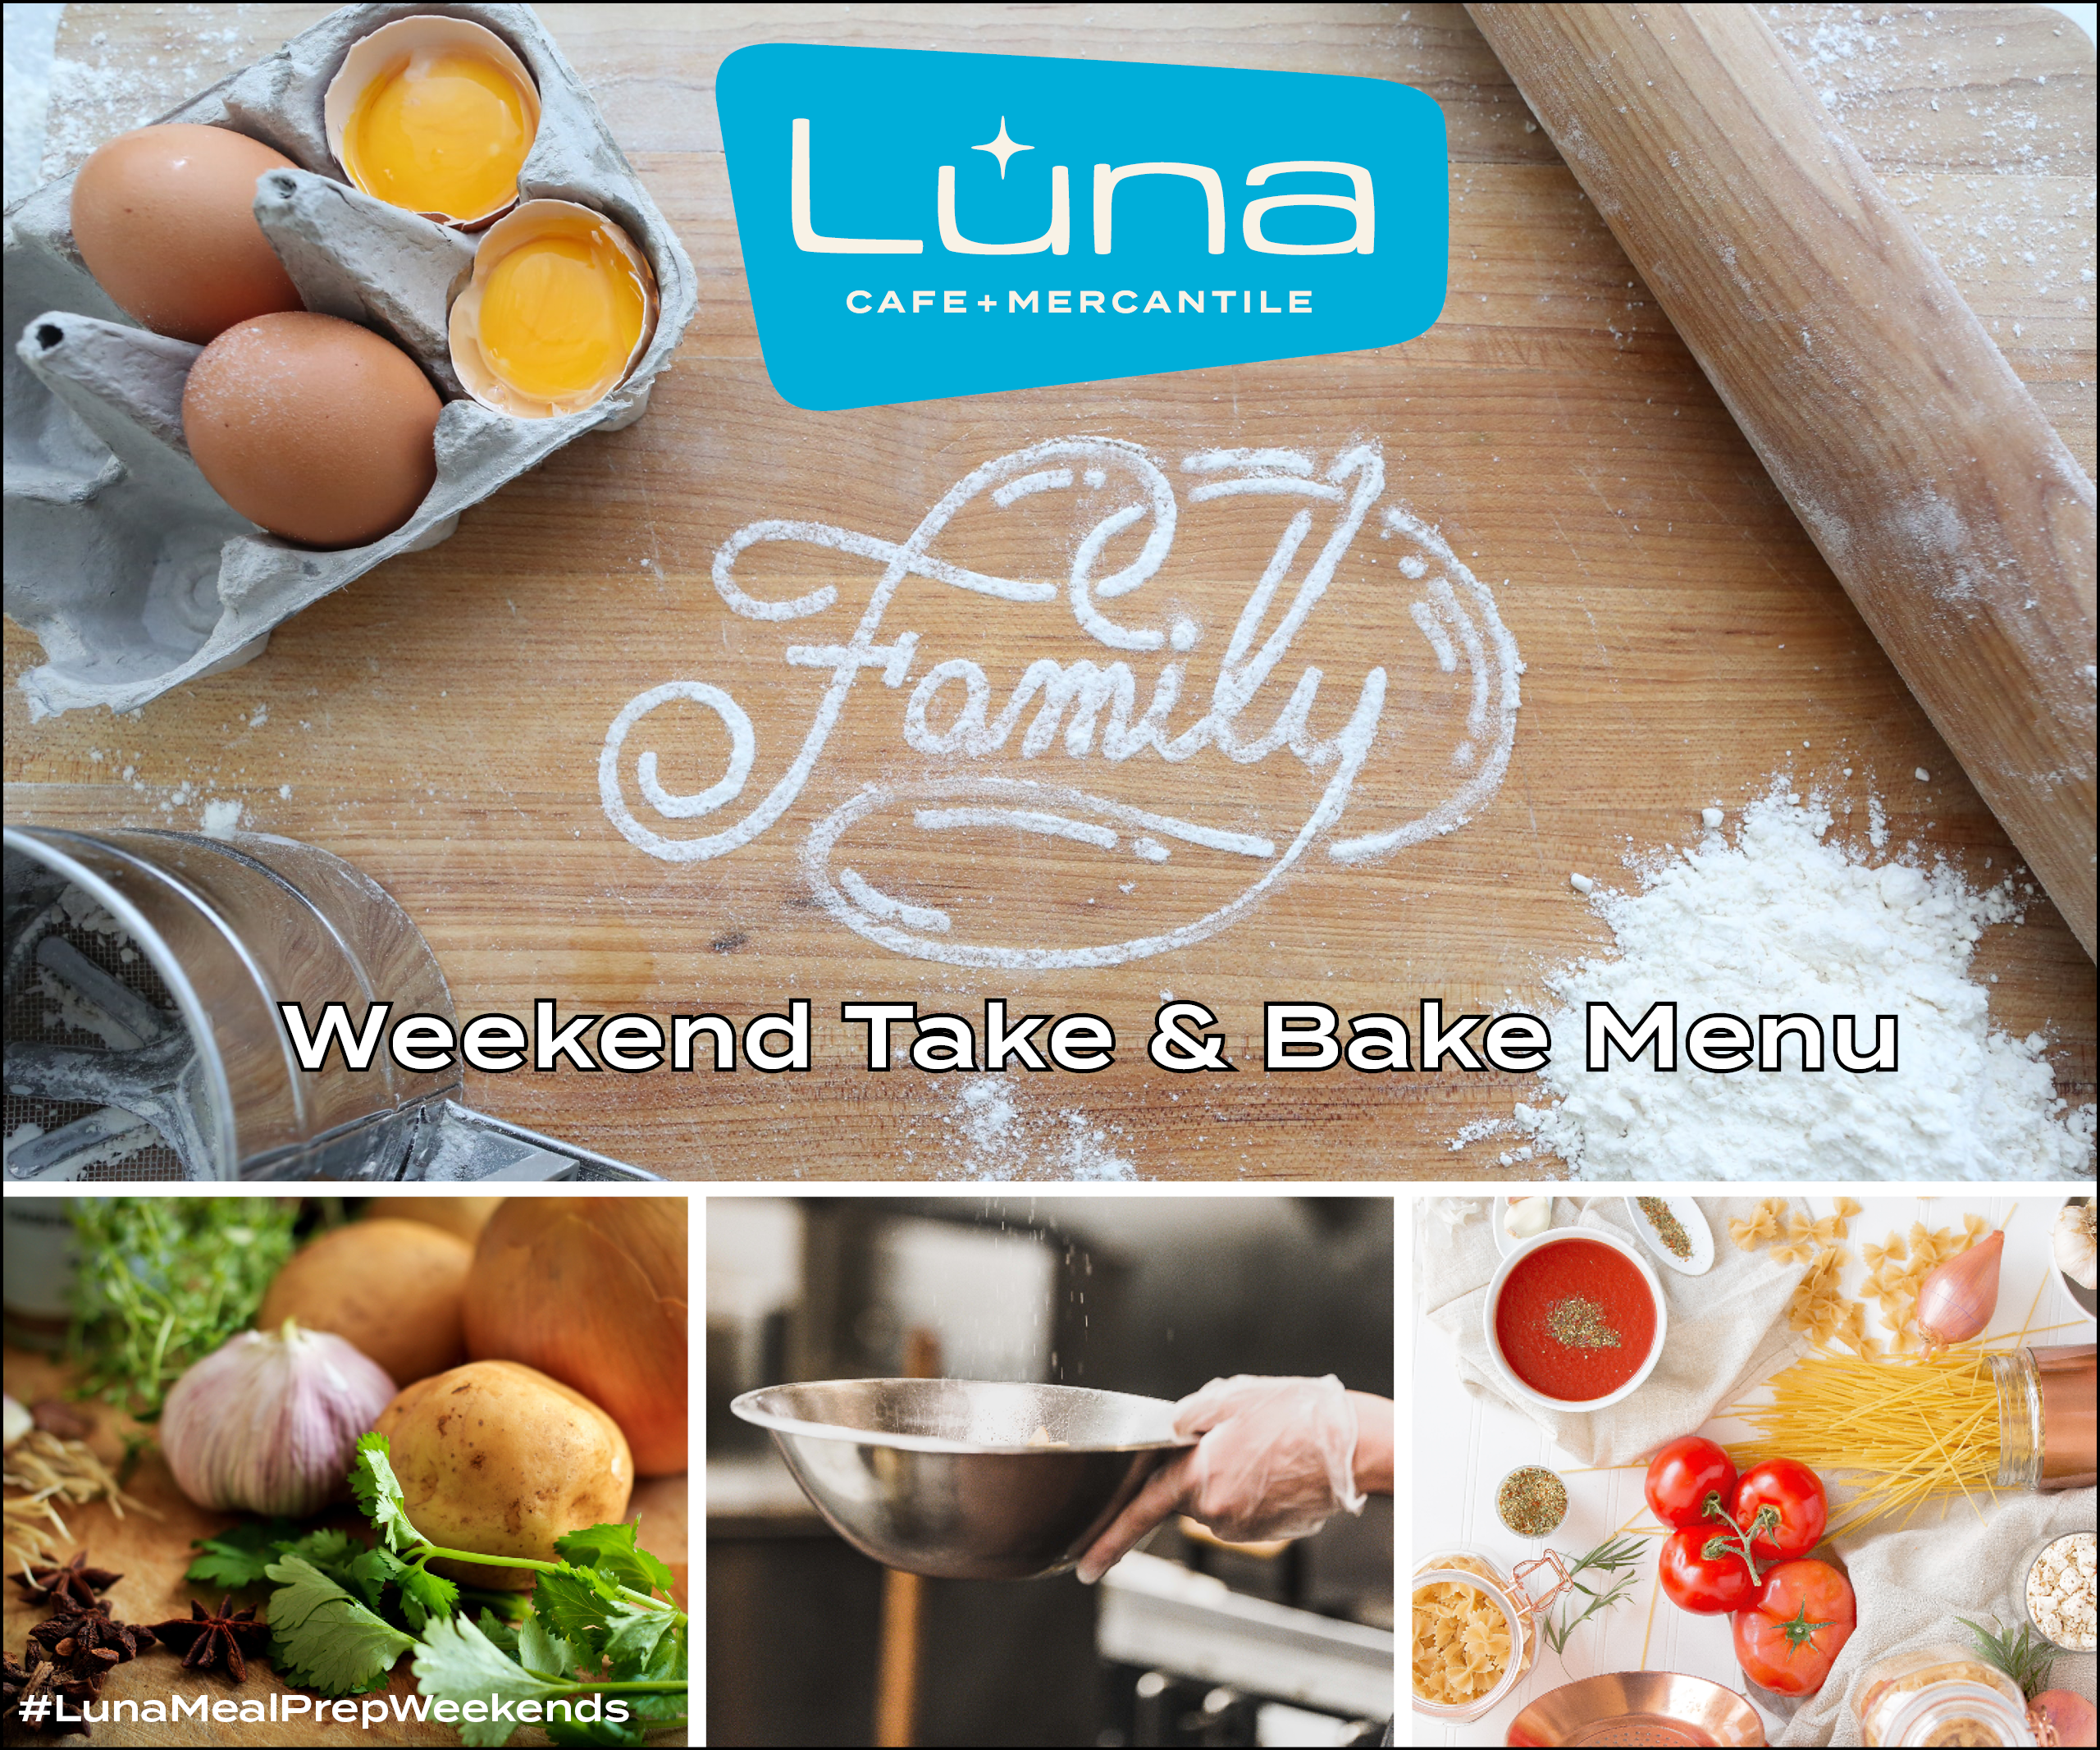 LUNA Family Weekend Take & Bake Menu